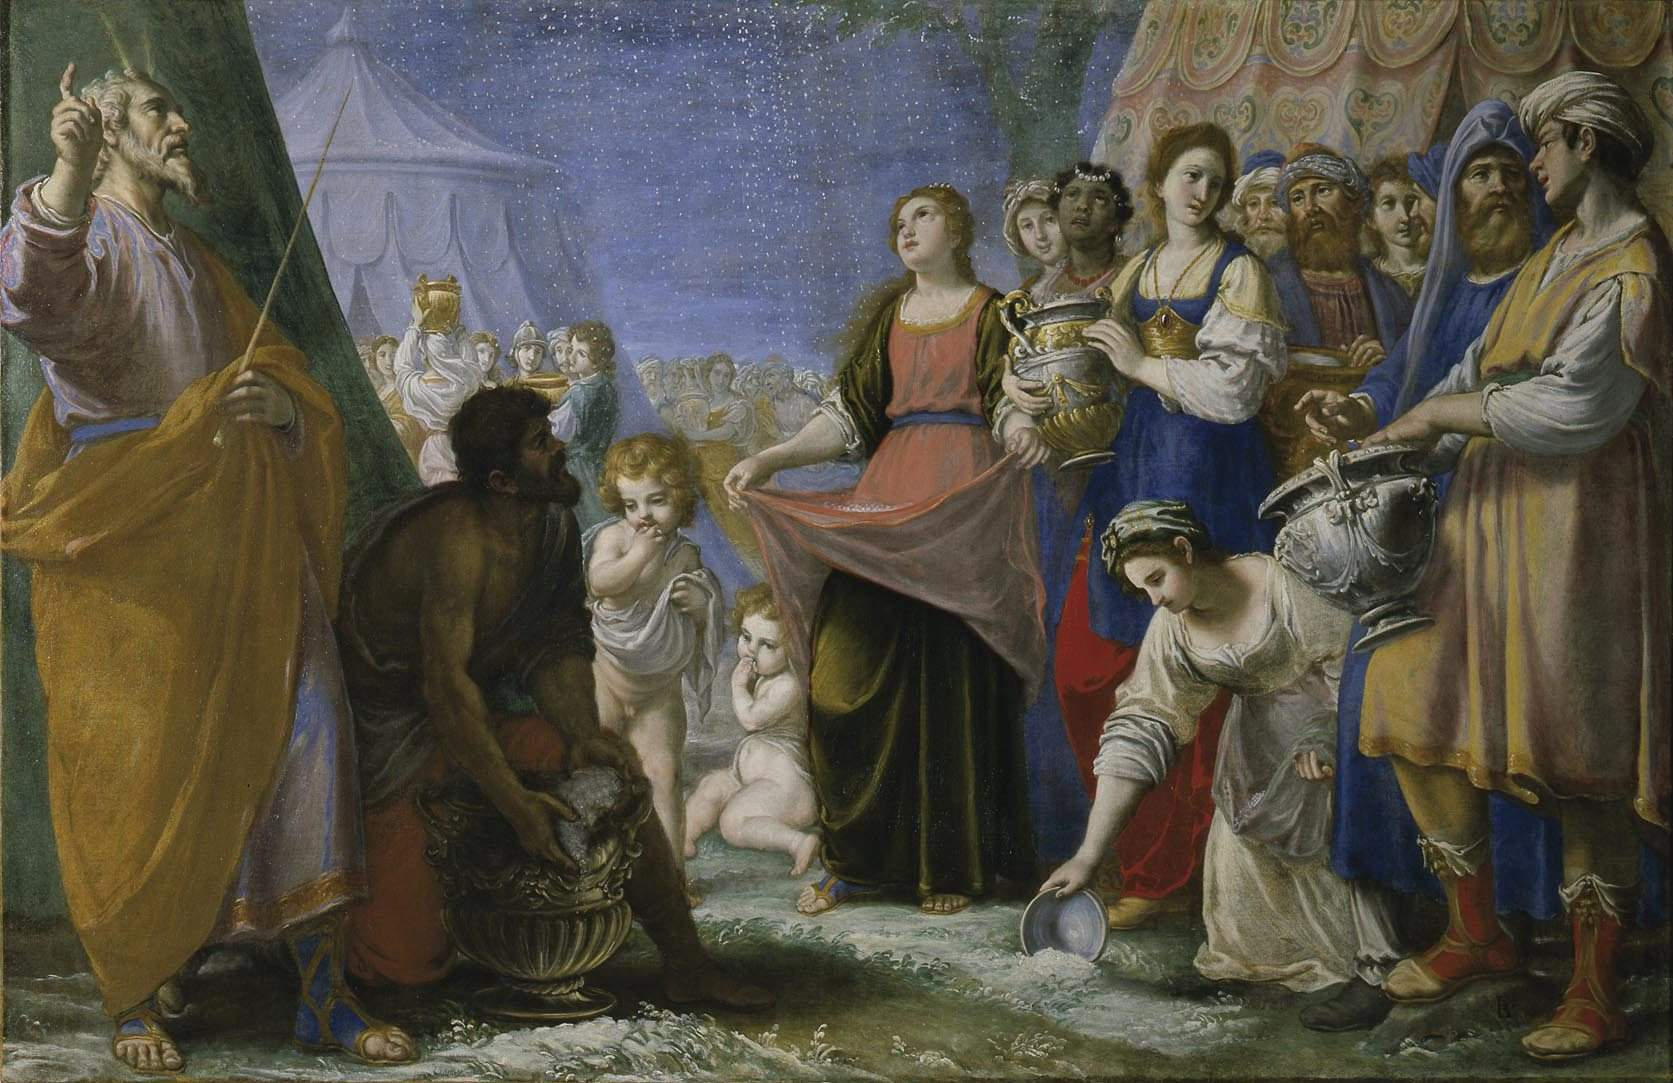 Fabrizio Boschi (Florence 1572-1642), The Miracle of the Manna, circa 1594-1597, oil on canvas, H.56.7 x W.90.2 inches, Collection of the Uffizi Gallery, Florence, Italy.